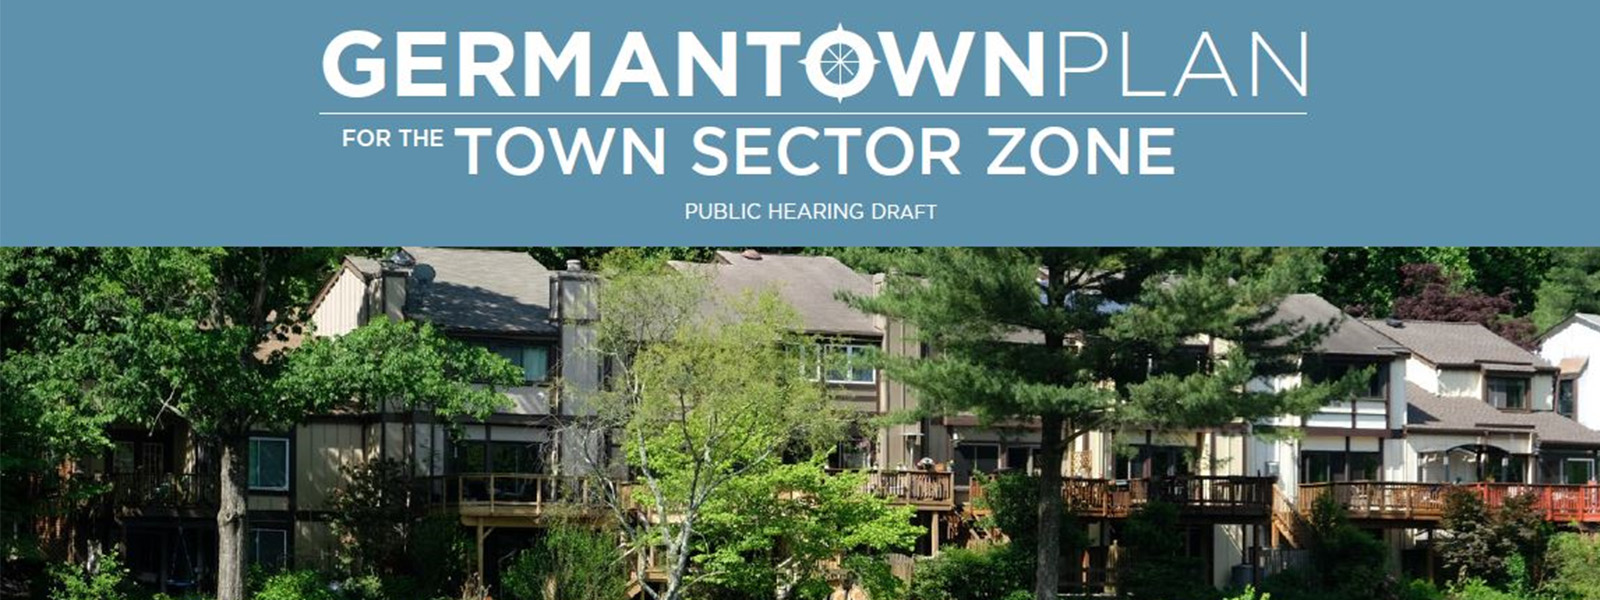 Germantown Plan Public Hearing Draft